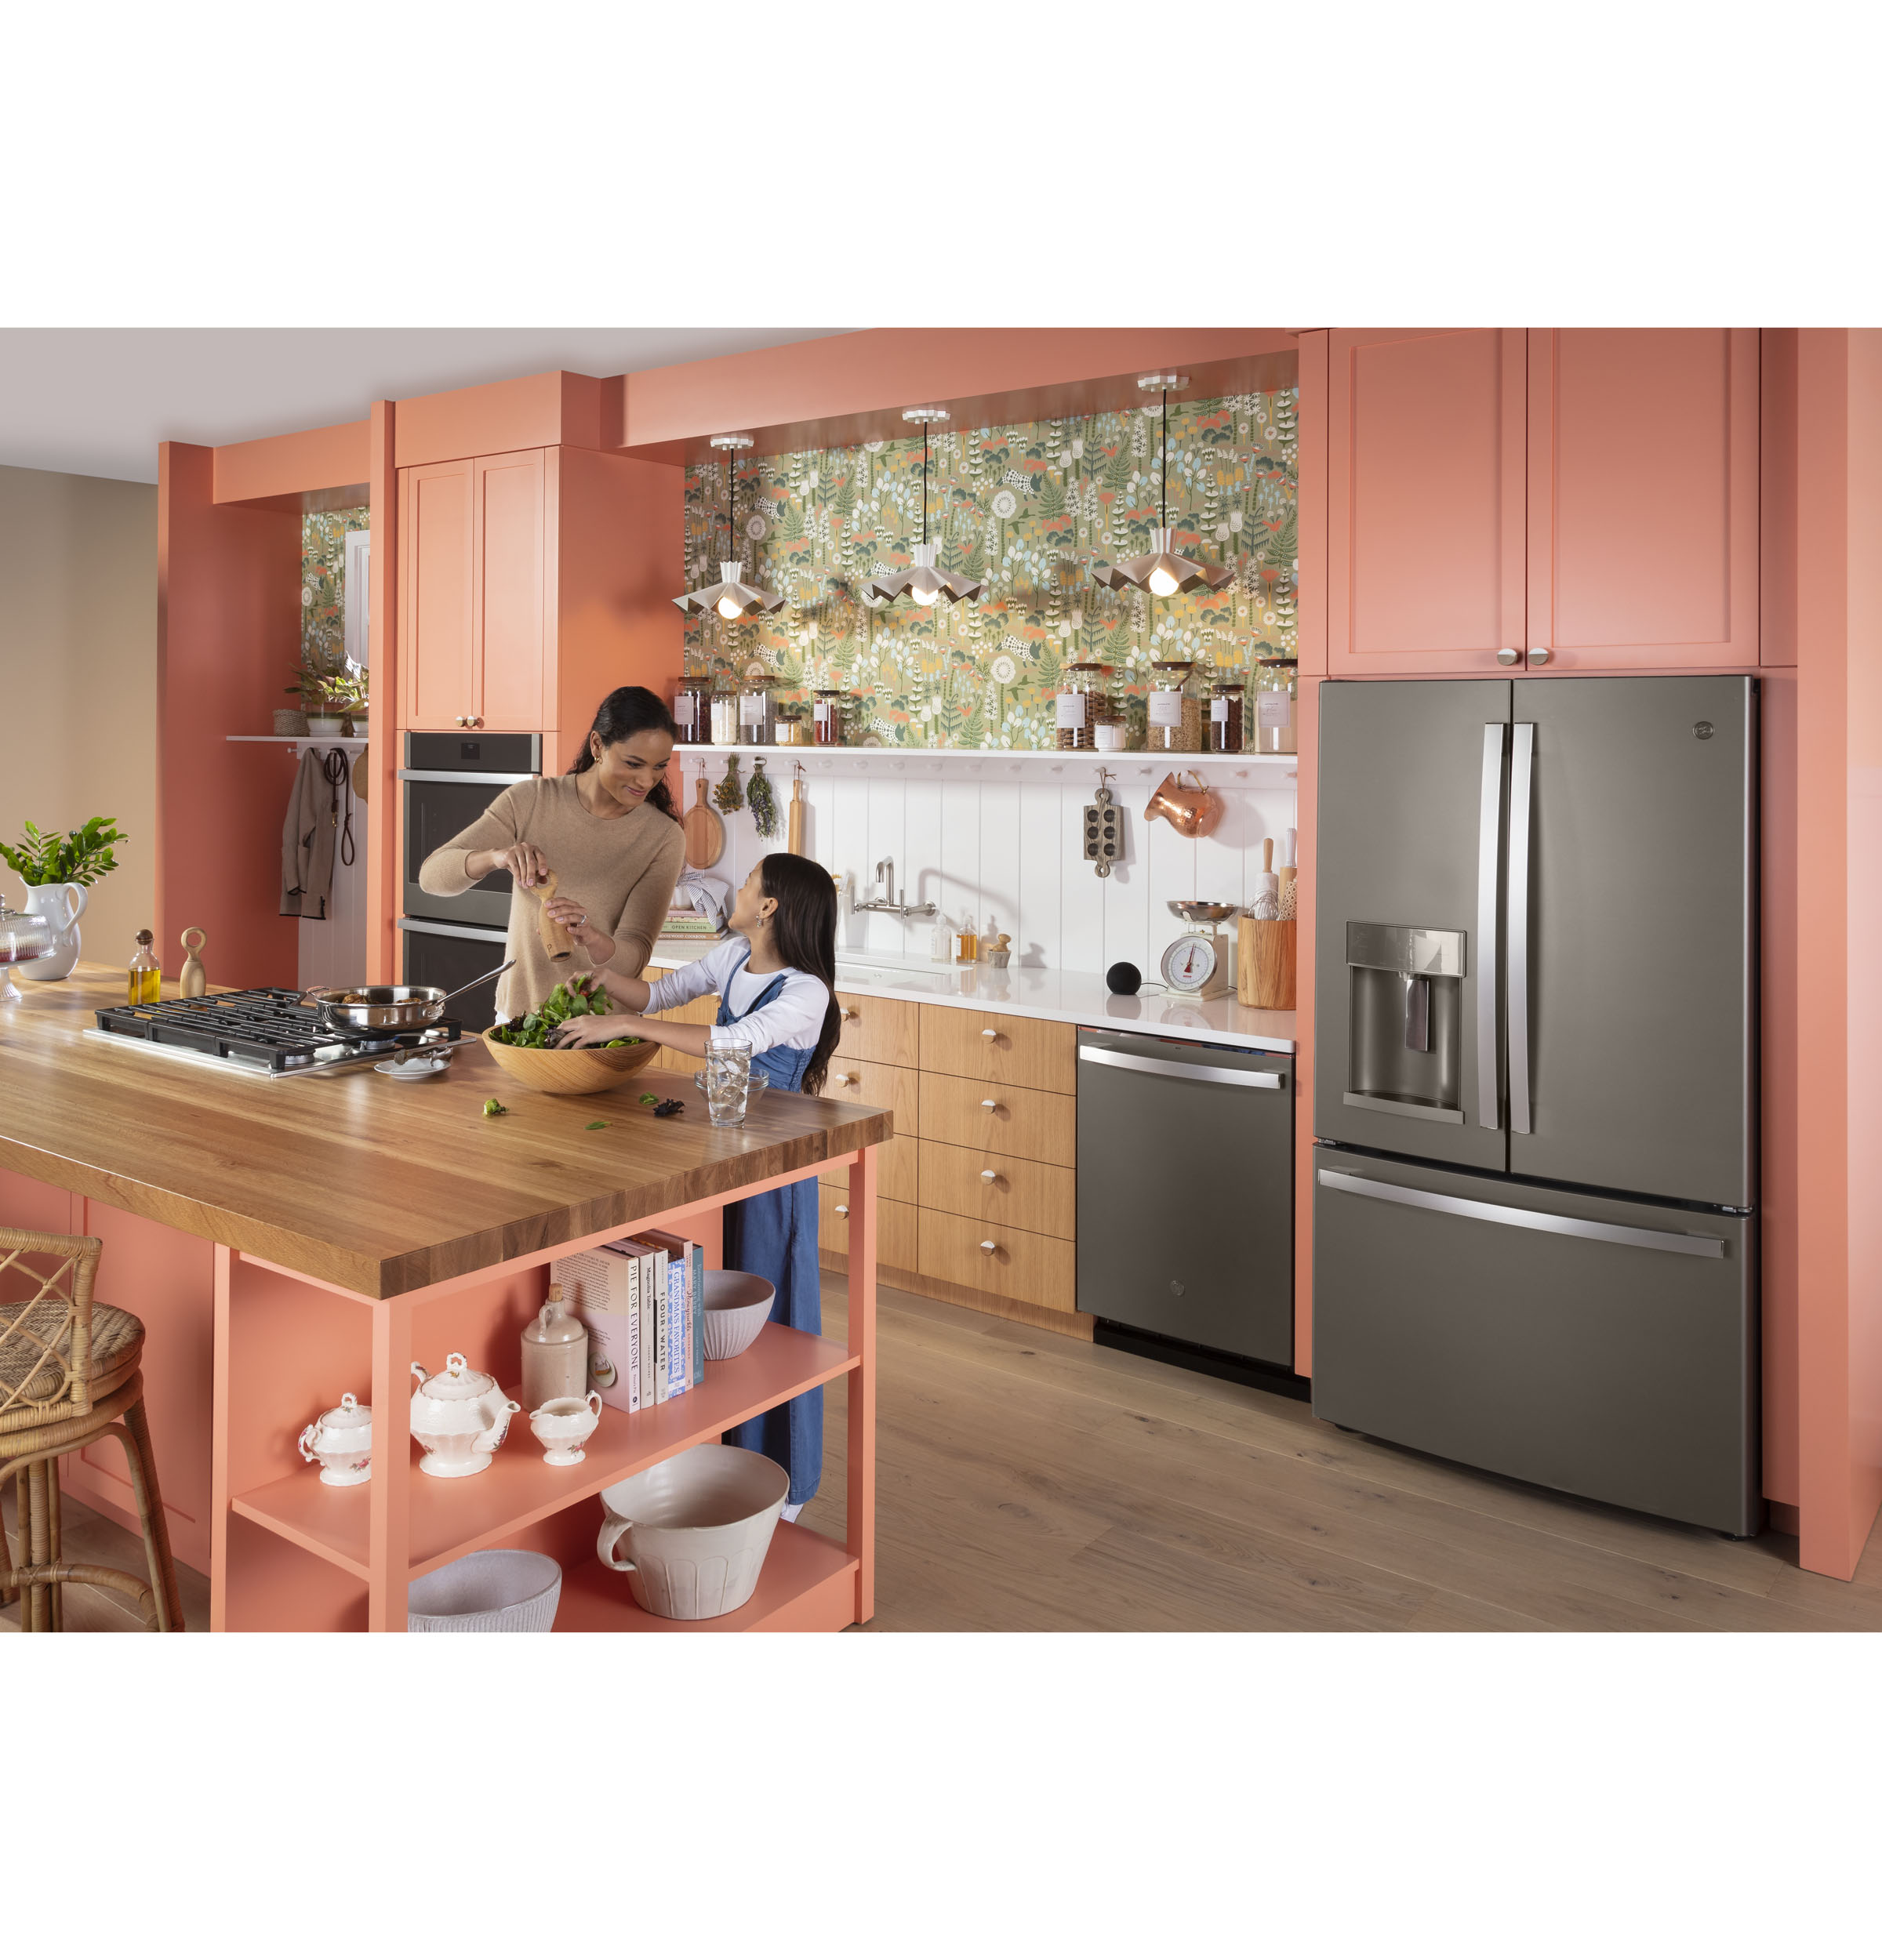 Model: GDT665SMNES | GE GE® Top Control with Stainless Steel Interior Dishwasher with Sanitize Cycle & Dry Boost with Fan Assist